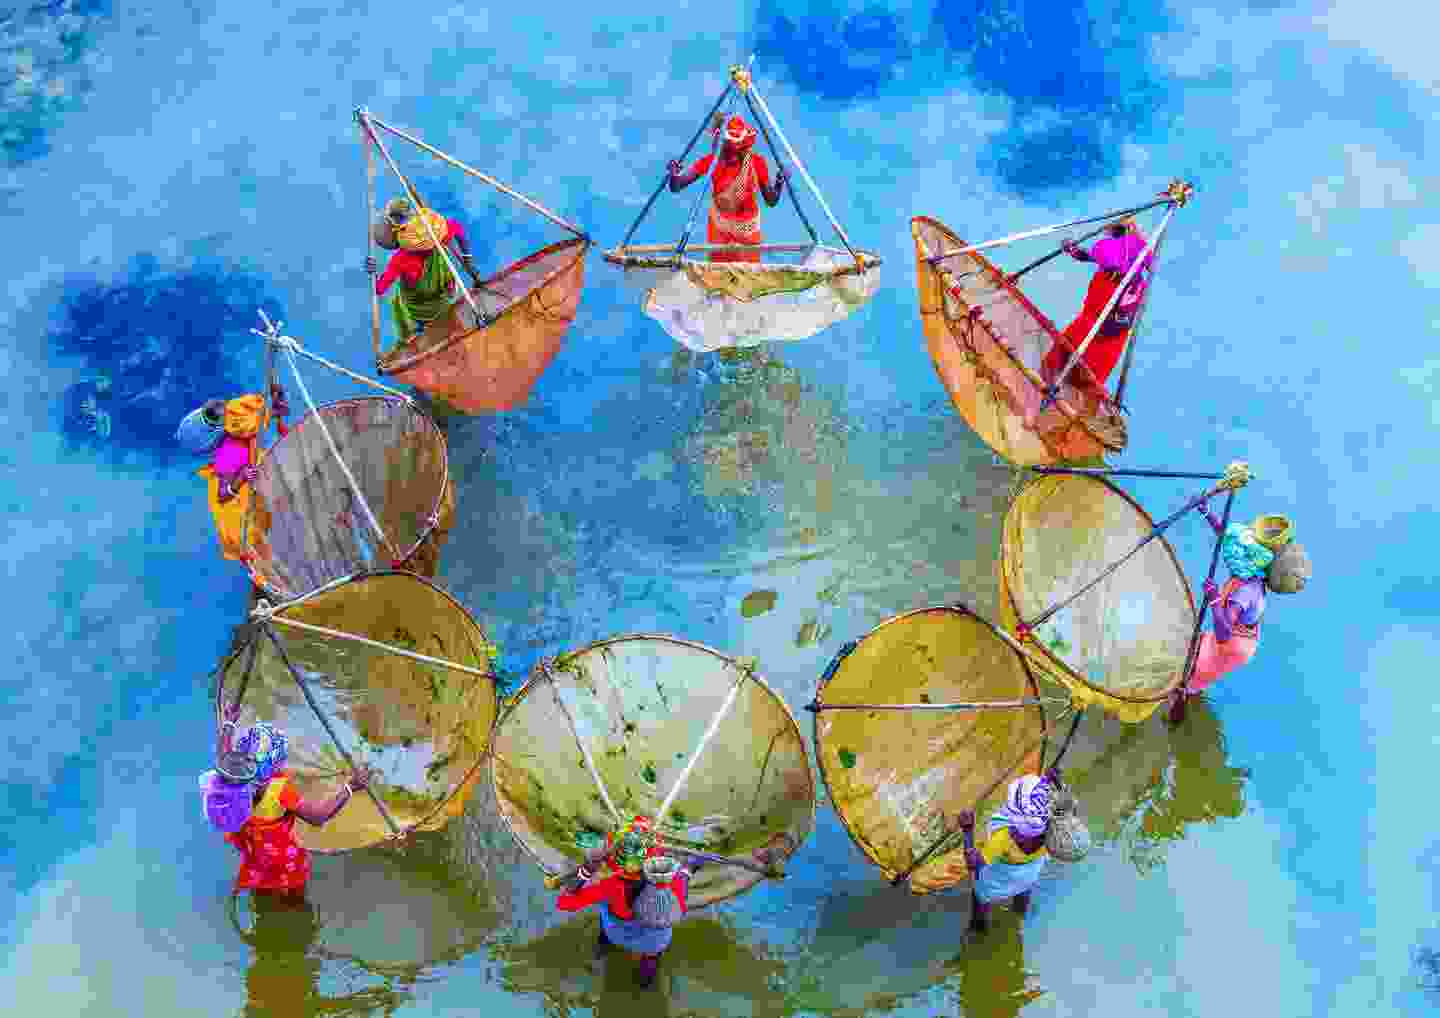 Colourful fishing West Bengal/Jharkhand border, India (Debasish Chakraborty)